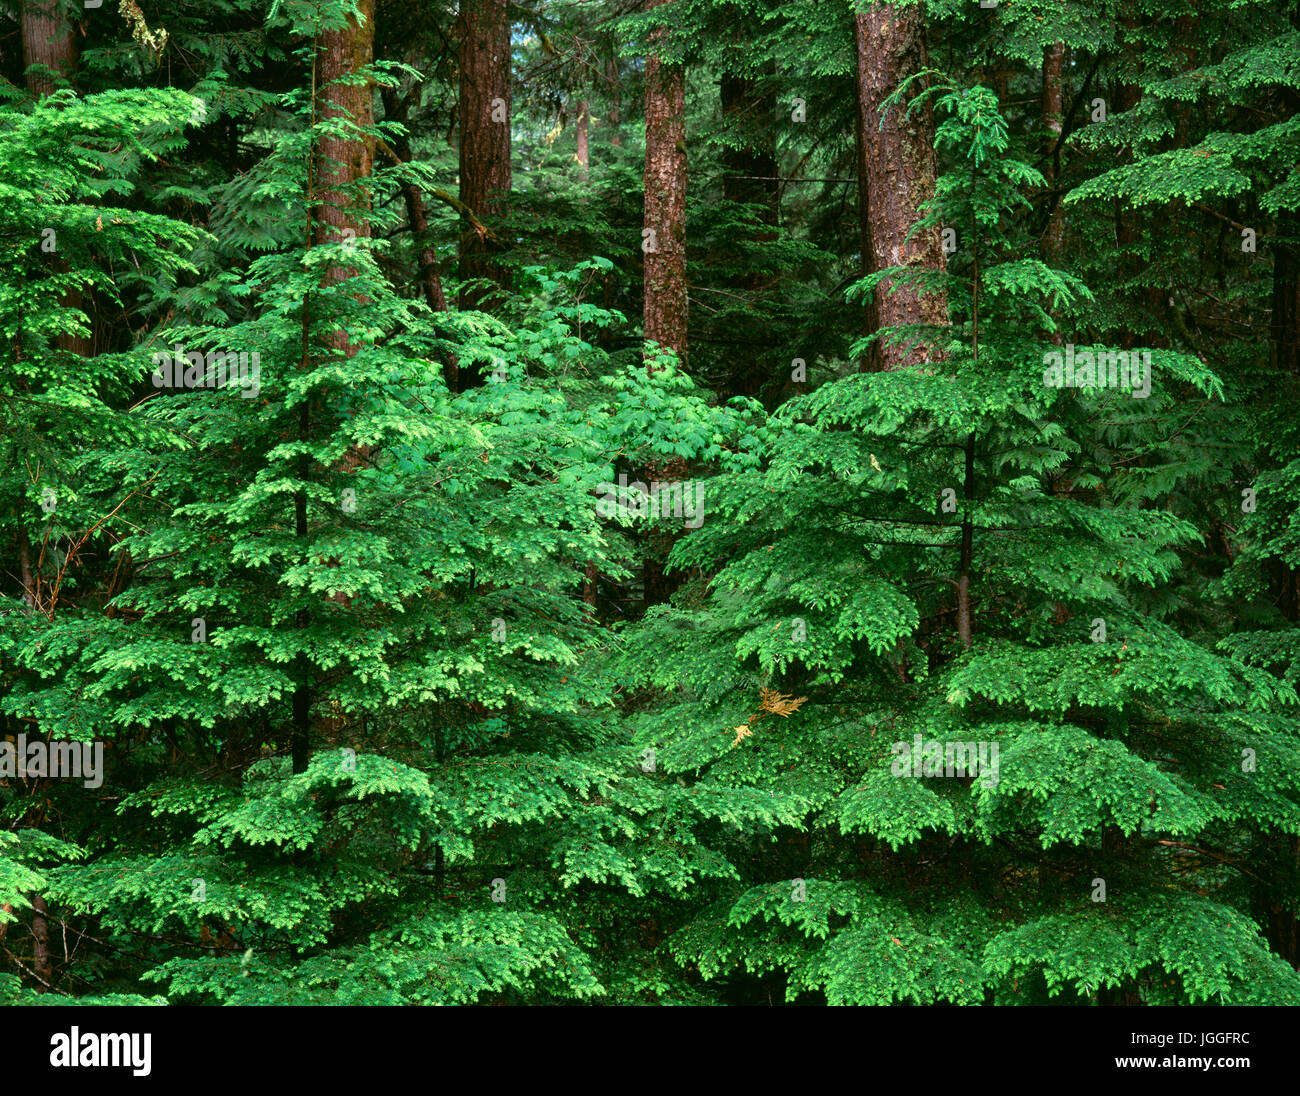 USA, Oregon, Willamette National Forest, Middle Santiam Wilderness, Spring growth of western hemlock saplings in - Stock Image